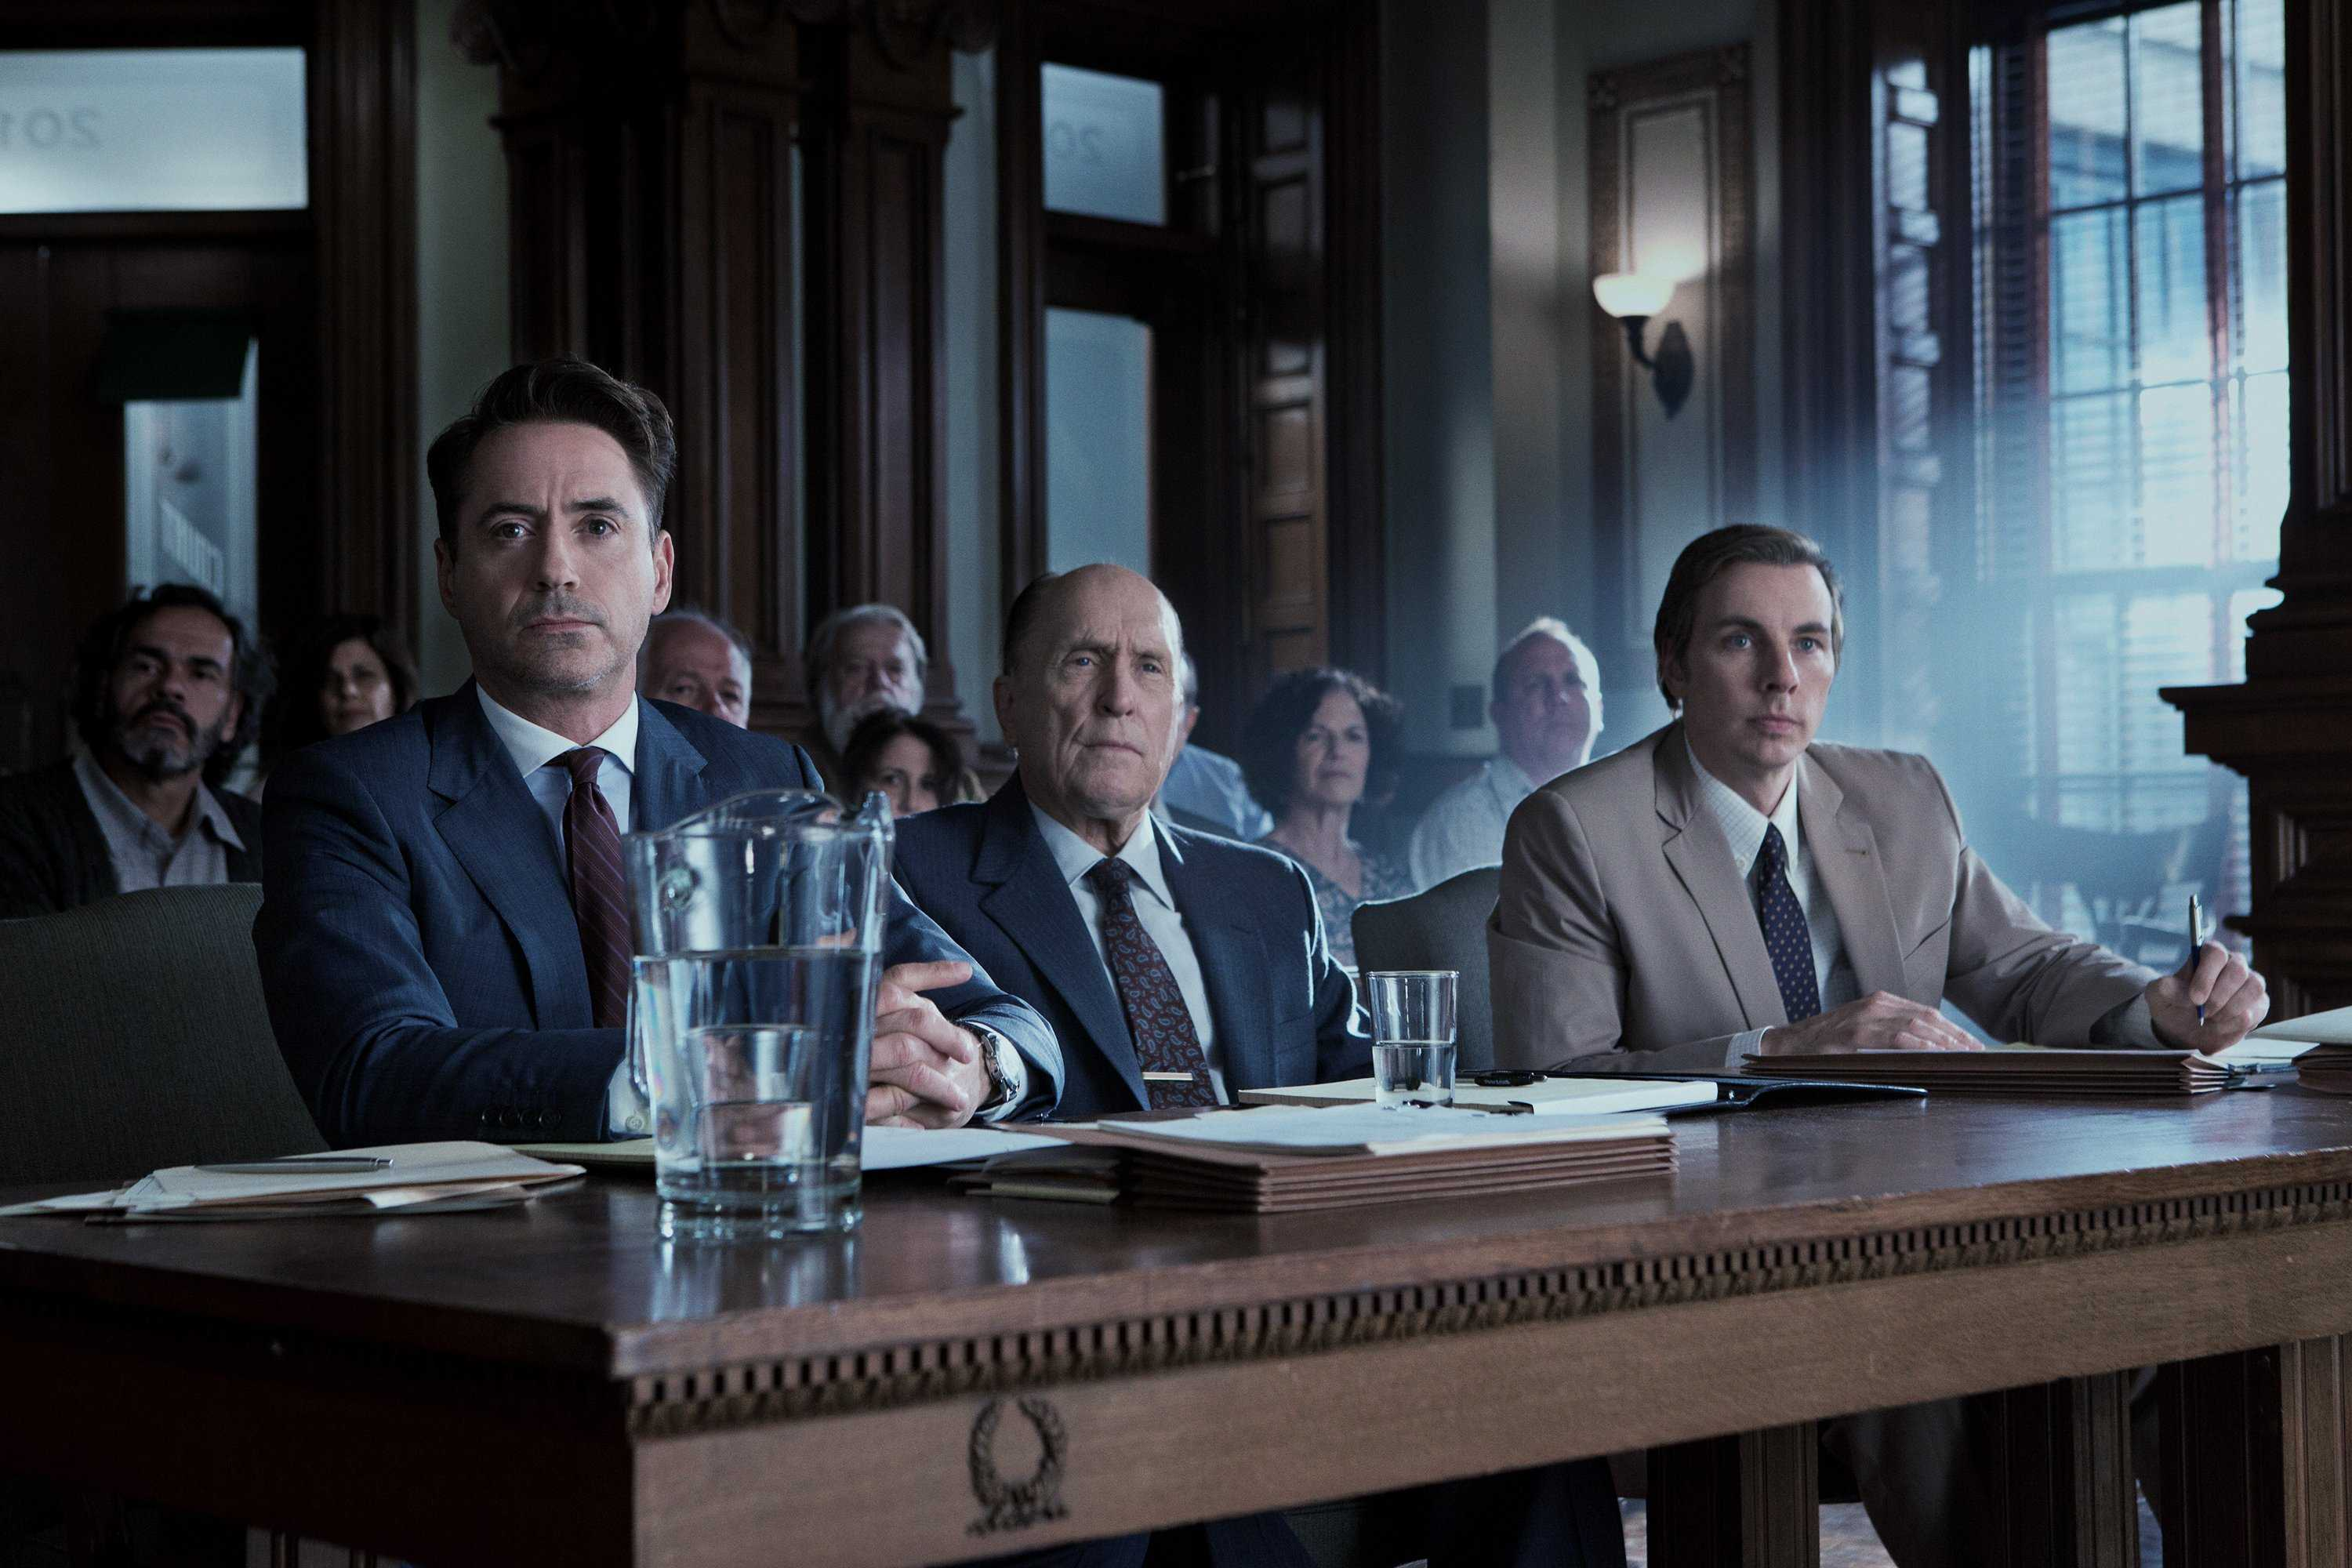 From left: Robert Downey Jr. as Hank Palmer, Robert Duvall as Joseph Palmer and Dax Shepard as C.P. Kennedy in Warner Bros. Pictures' and Village Roadshow Pictures' drama